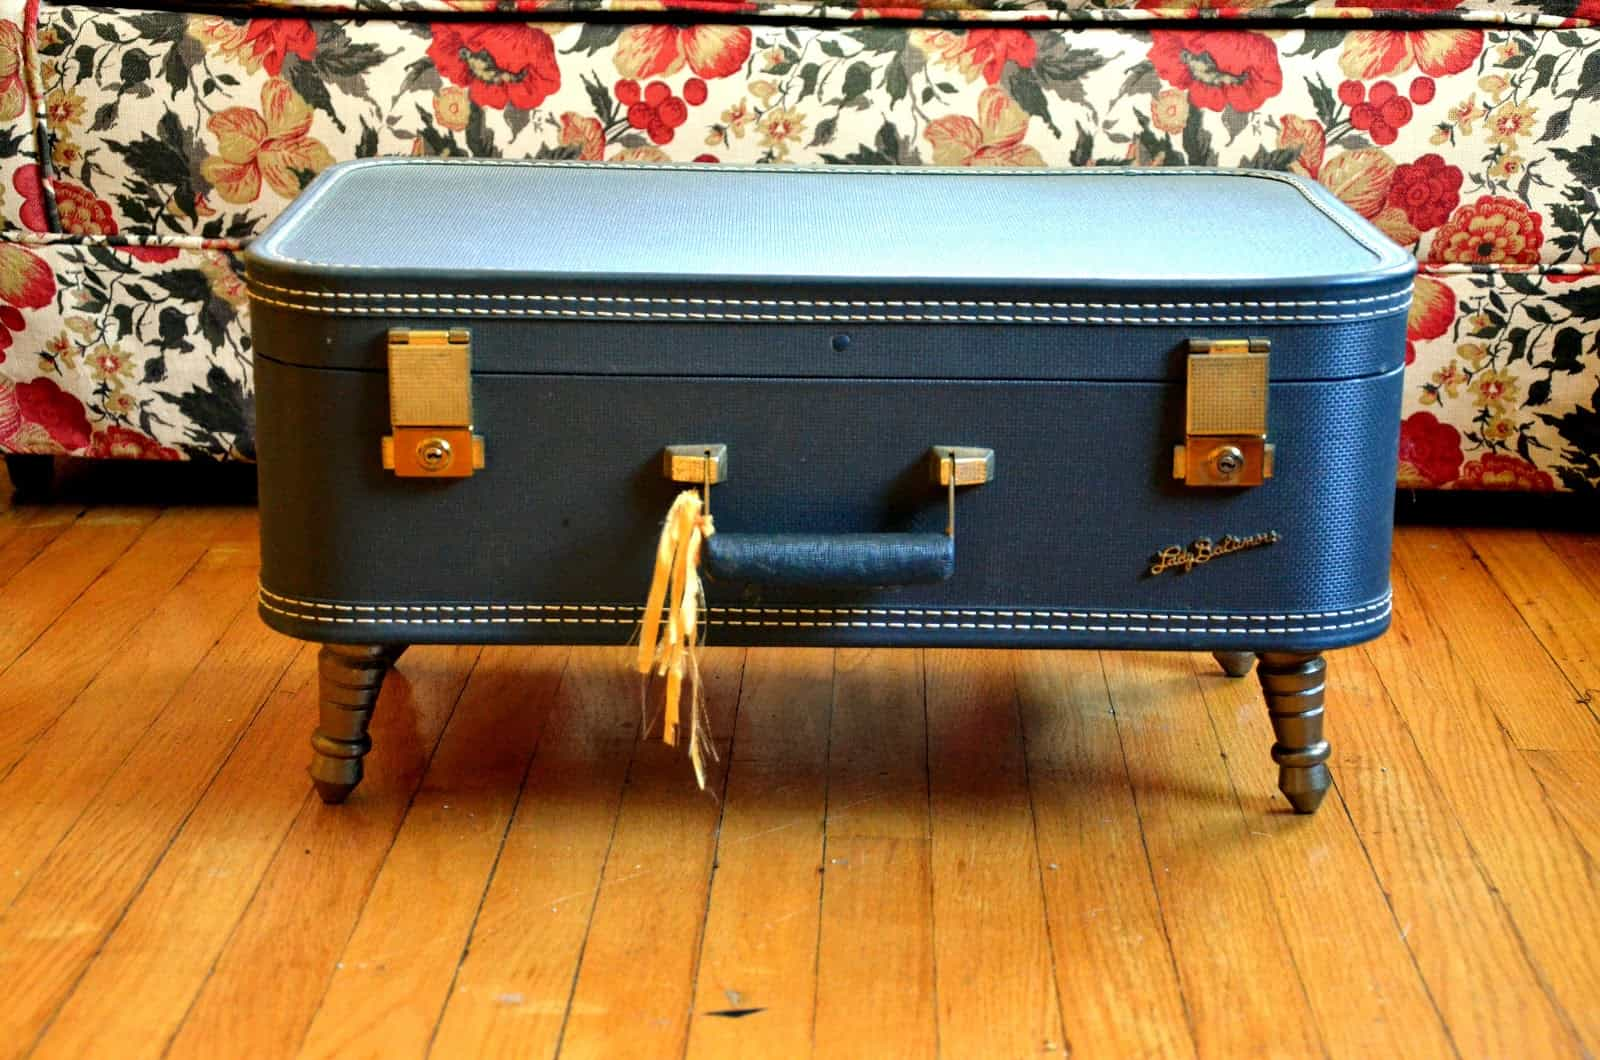 Low vintage suircase coffee table